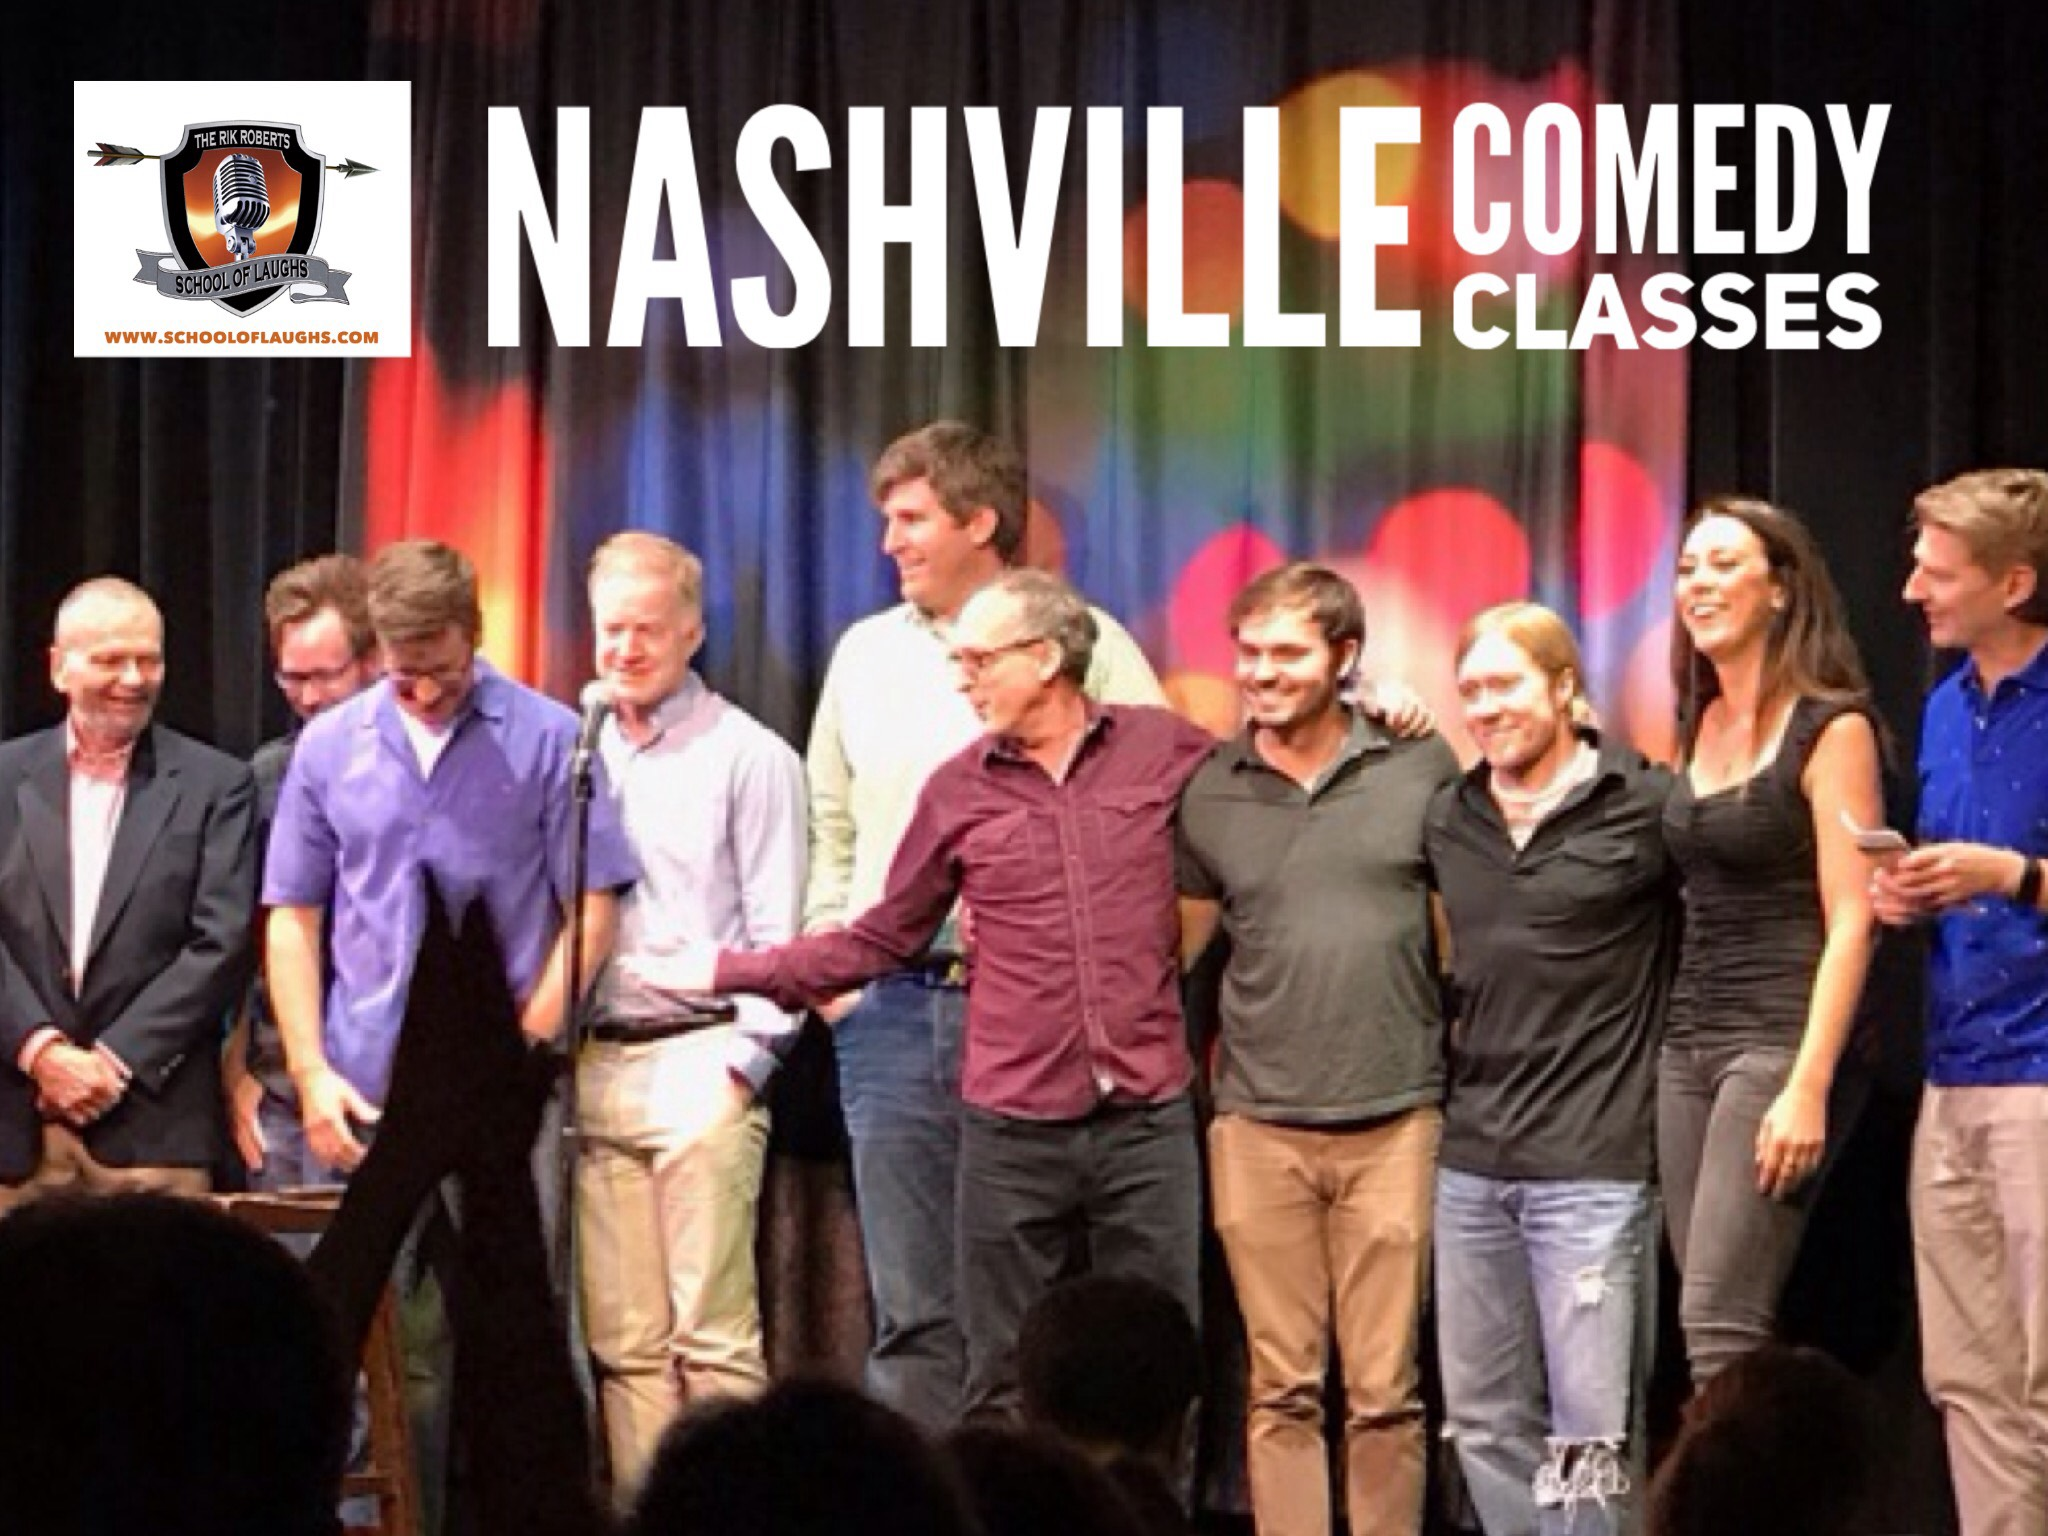 nashville comedy classes